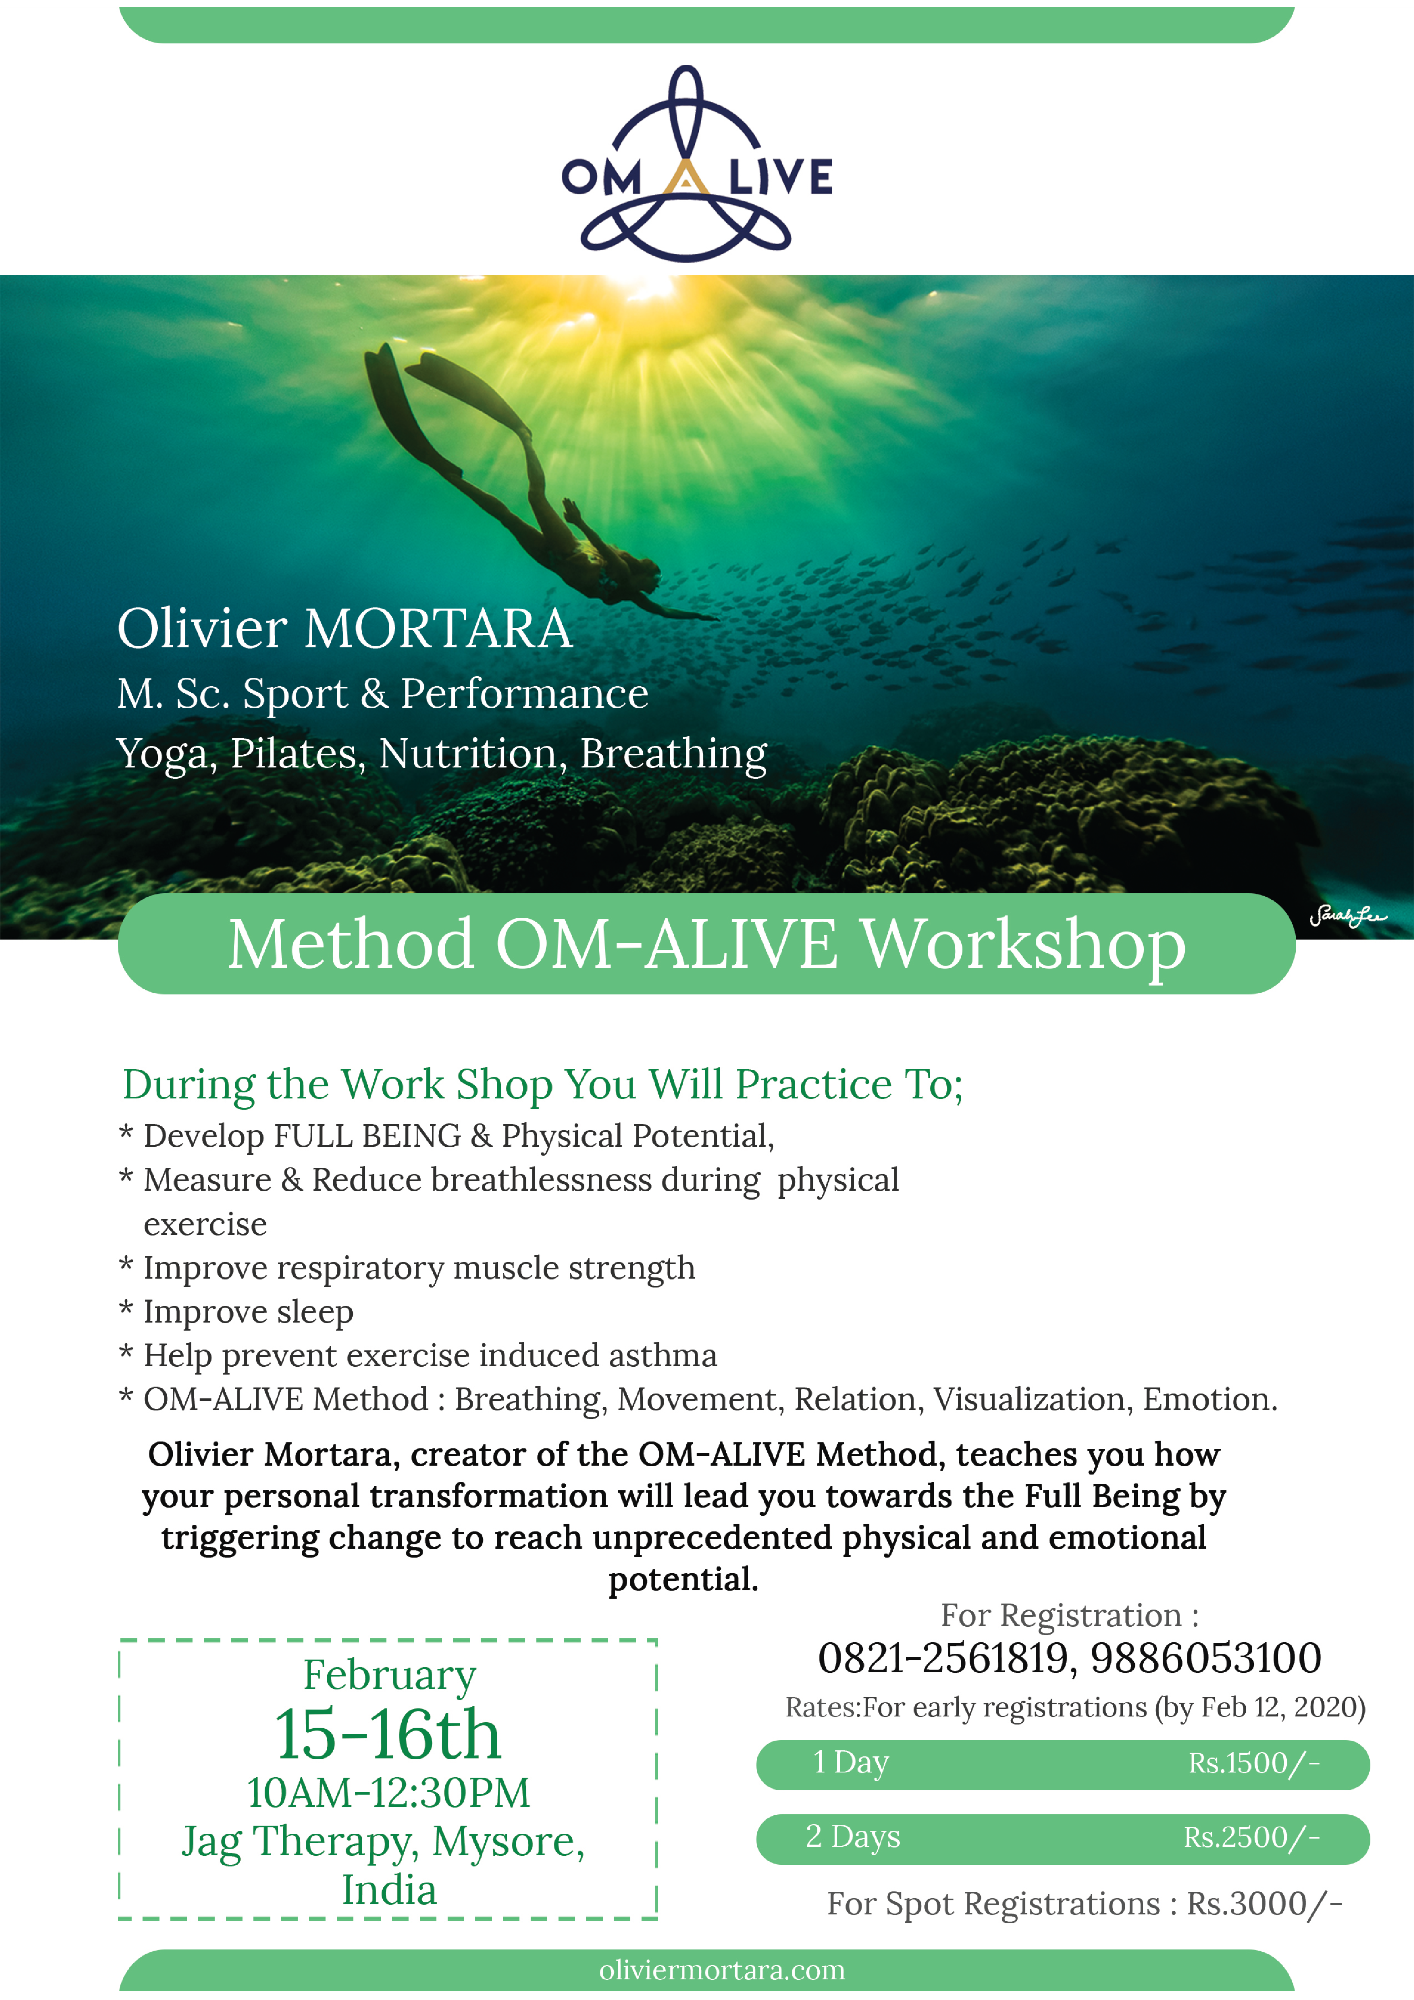 Méthode OM-ALIVE En Inde – OM-ALIVE Method in India